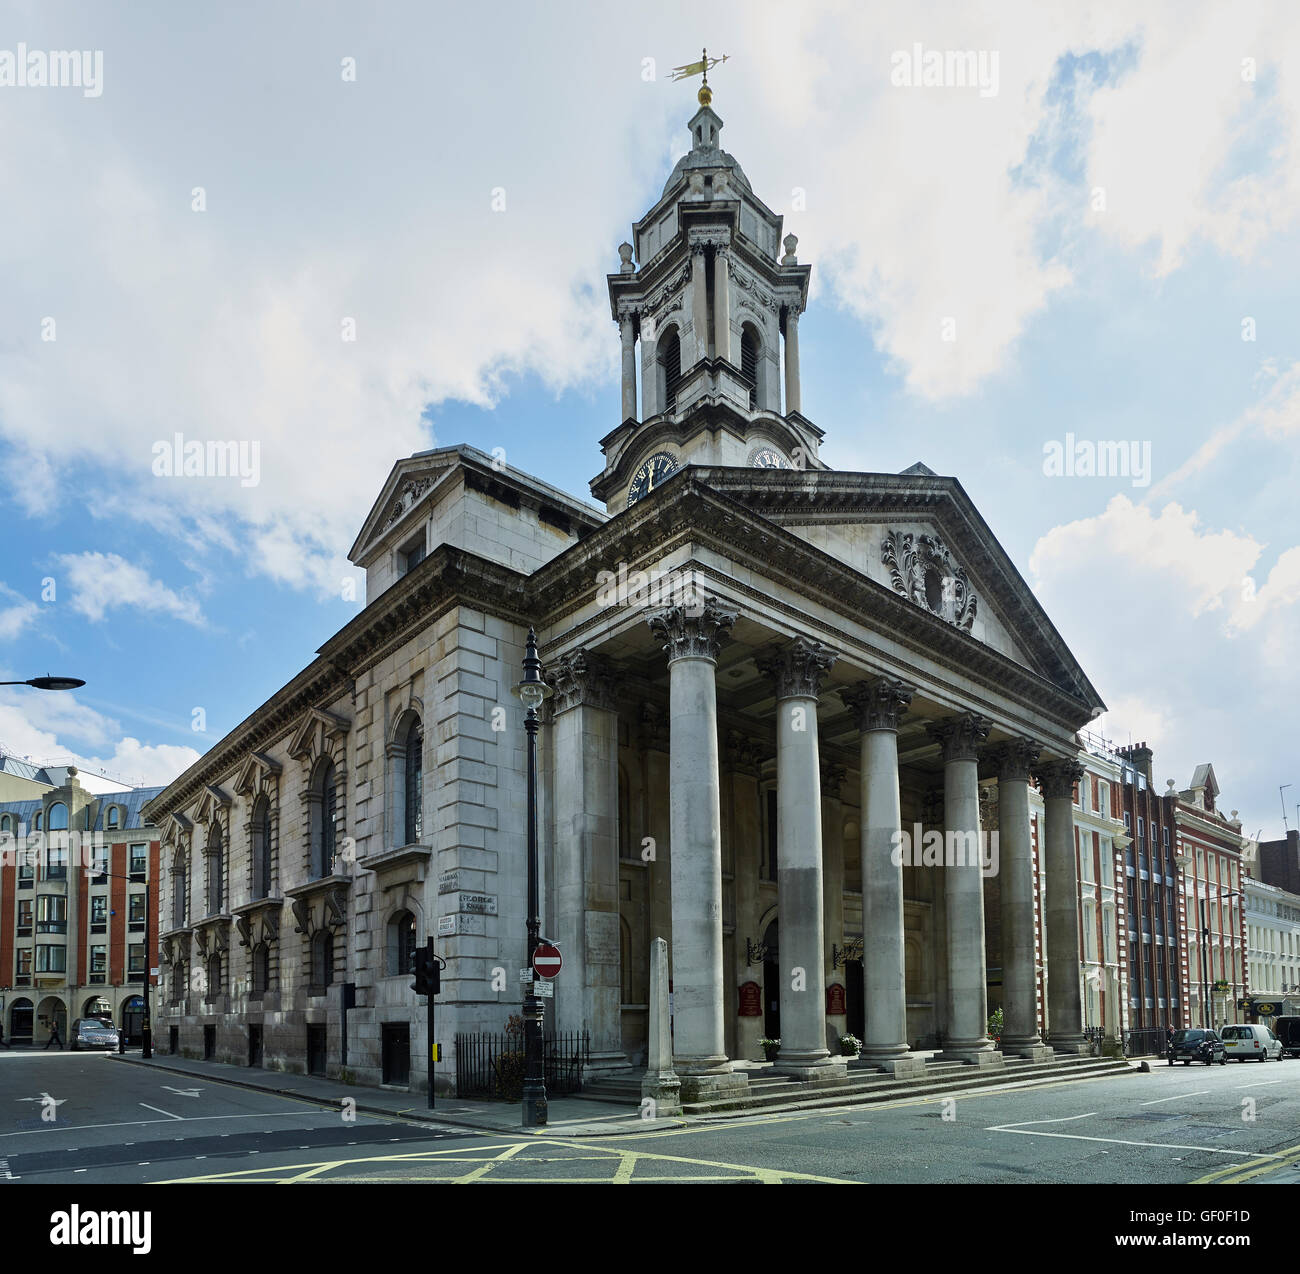 St George's Hanover Square. Portico and tower; built by John James between 1721 and 1725. - Stock Image